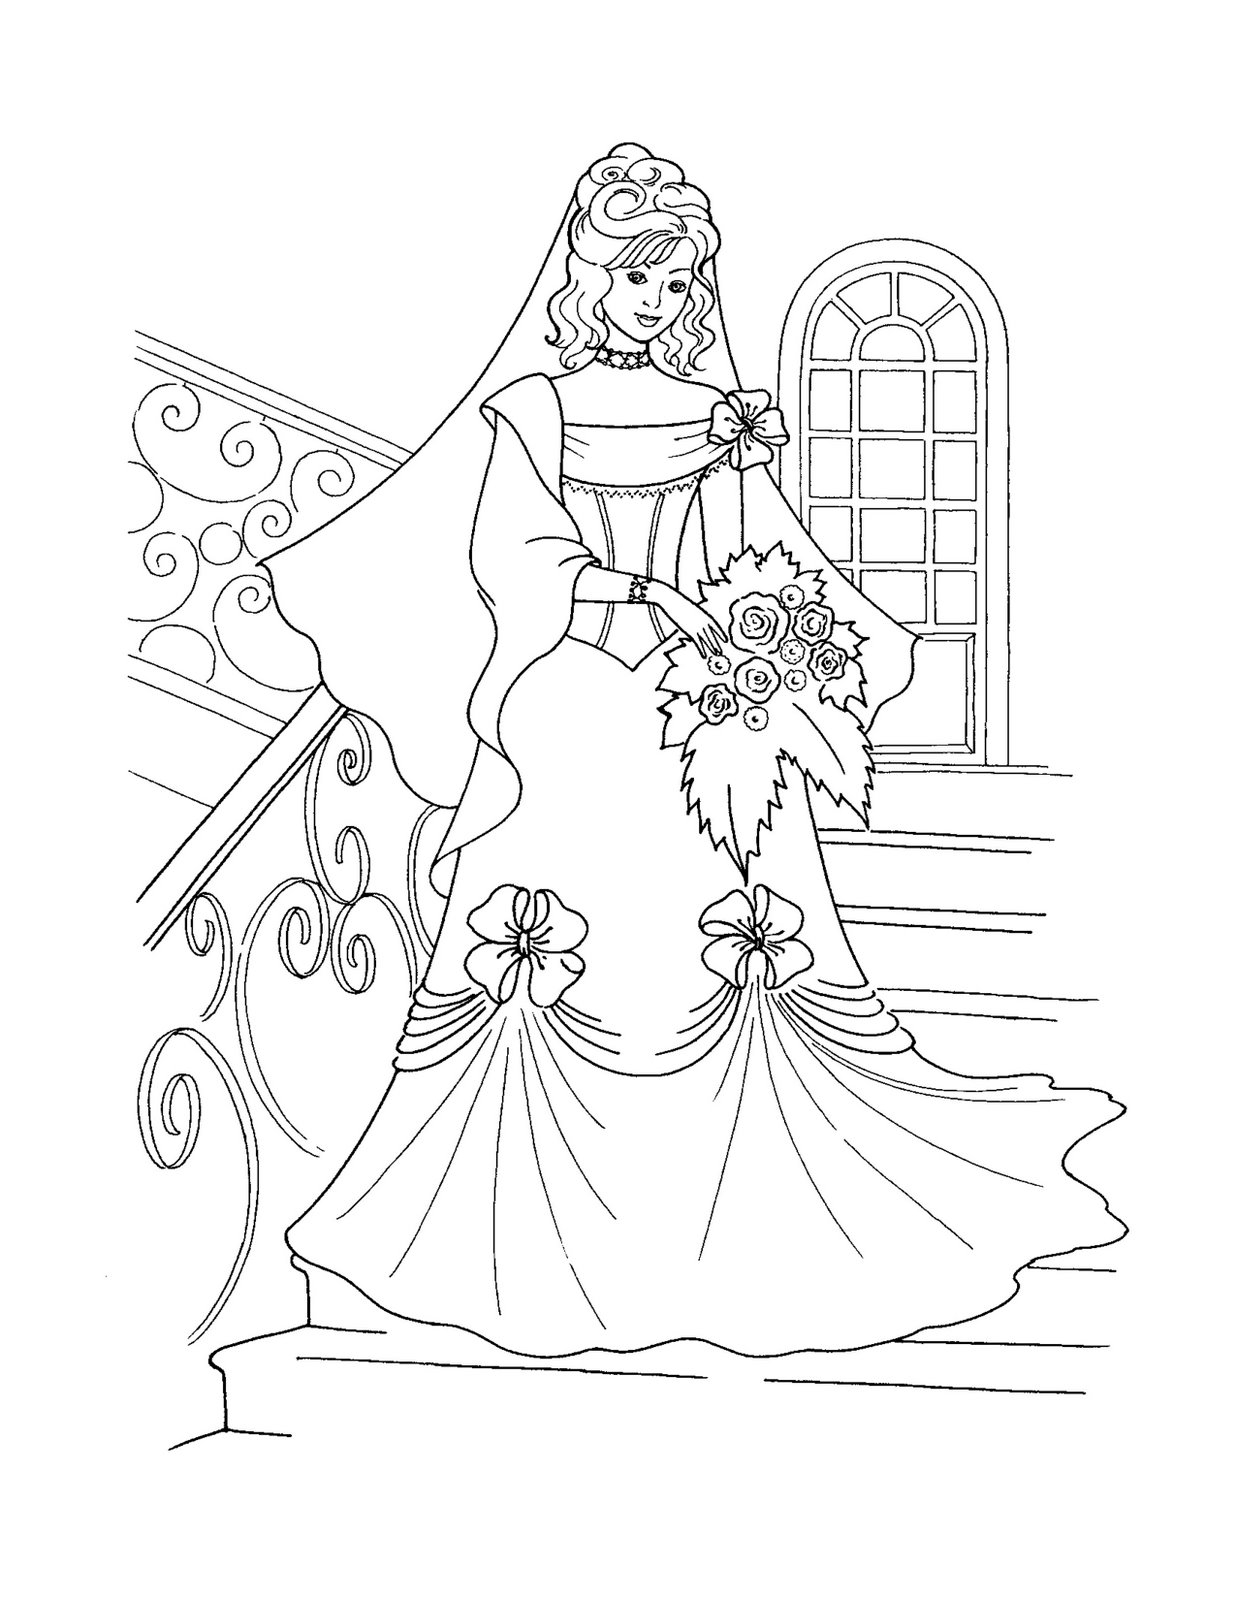 Disney Princess Coloring Page Free Printable Disney Princess